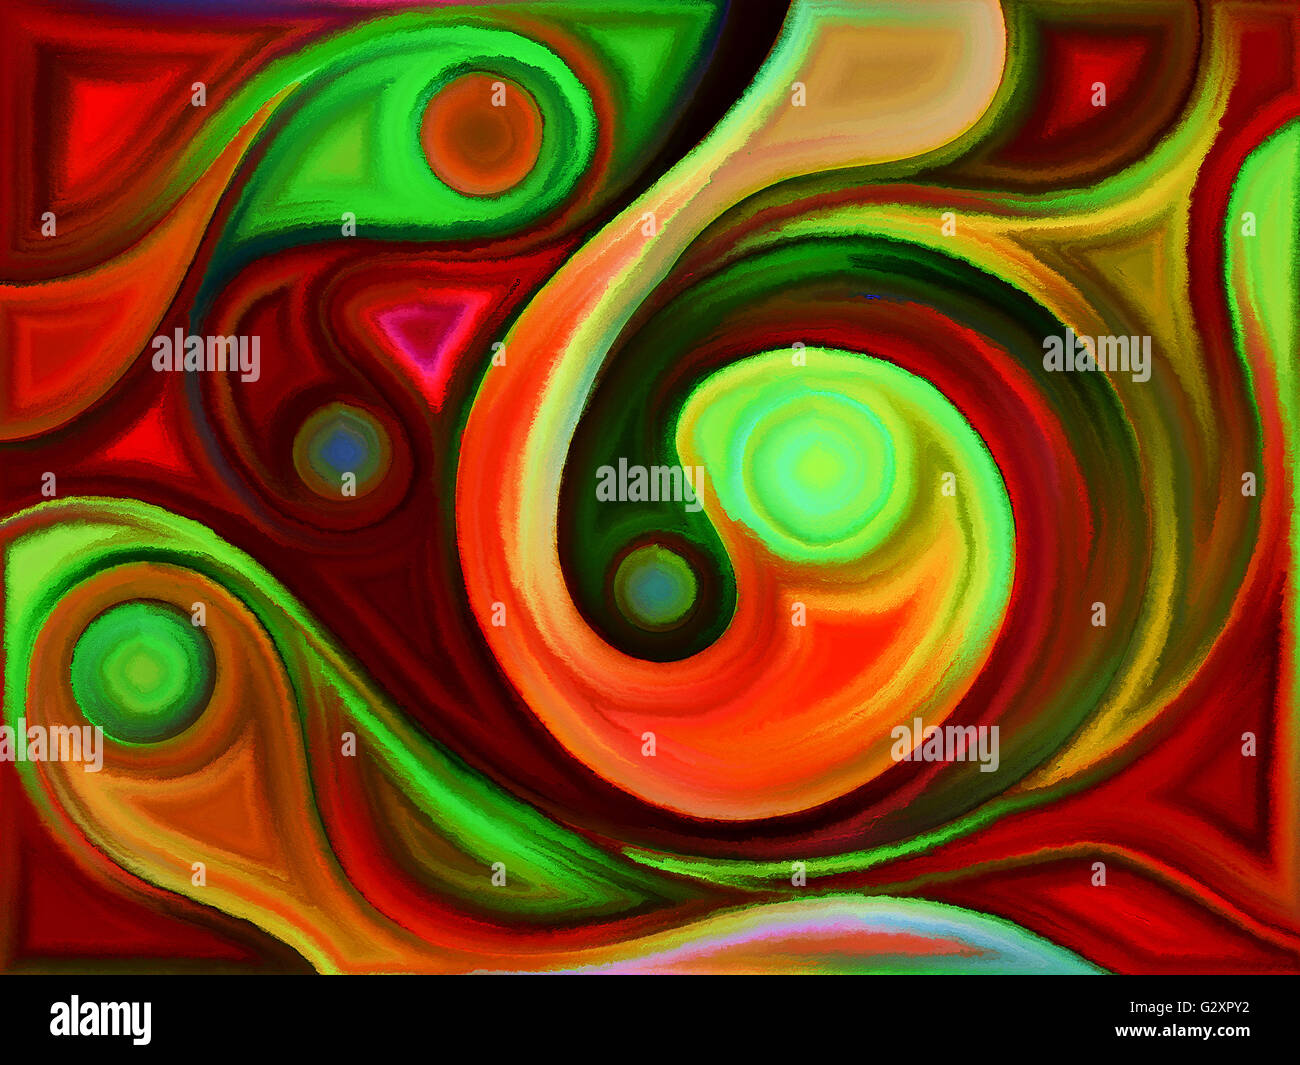 Motion of Colors series. Backdrop of swirls of colors on the subject of spirituality, imagination and art - Stock Image